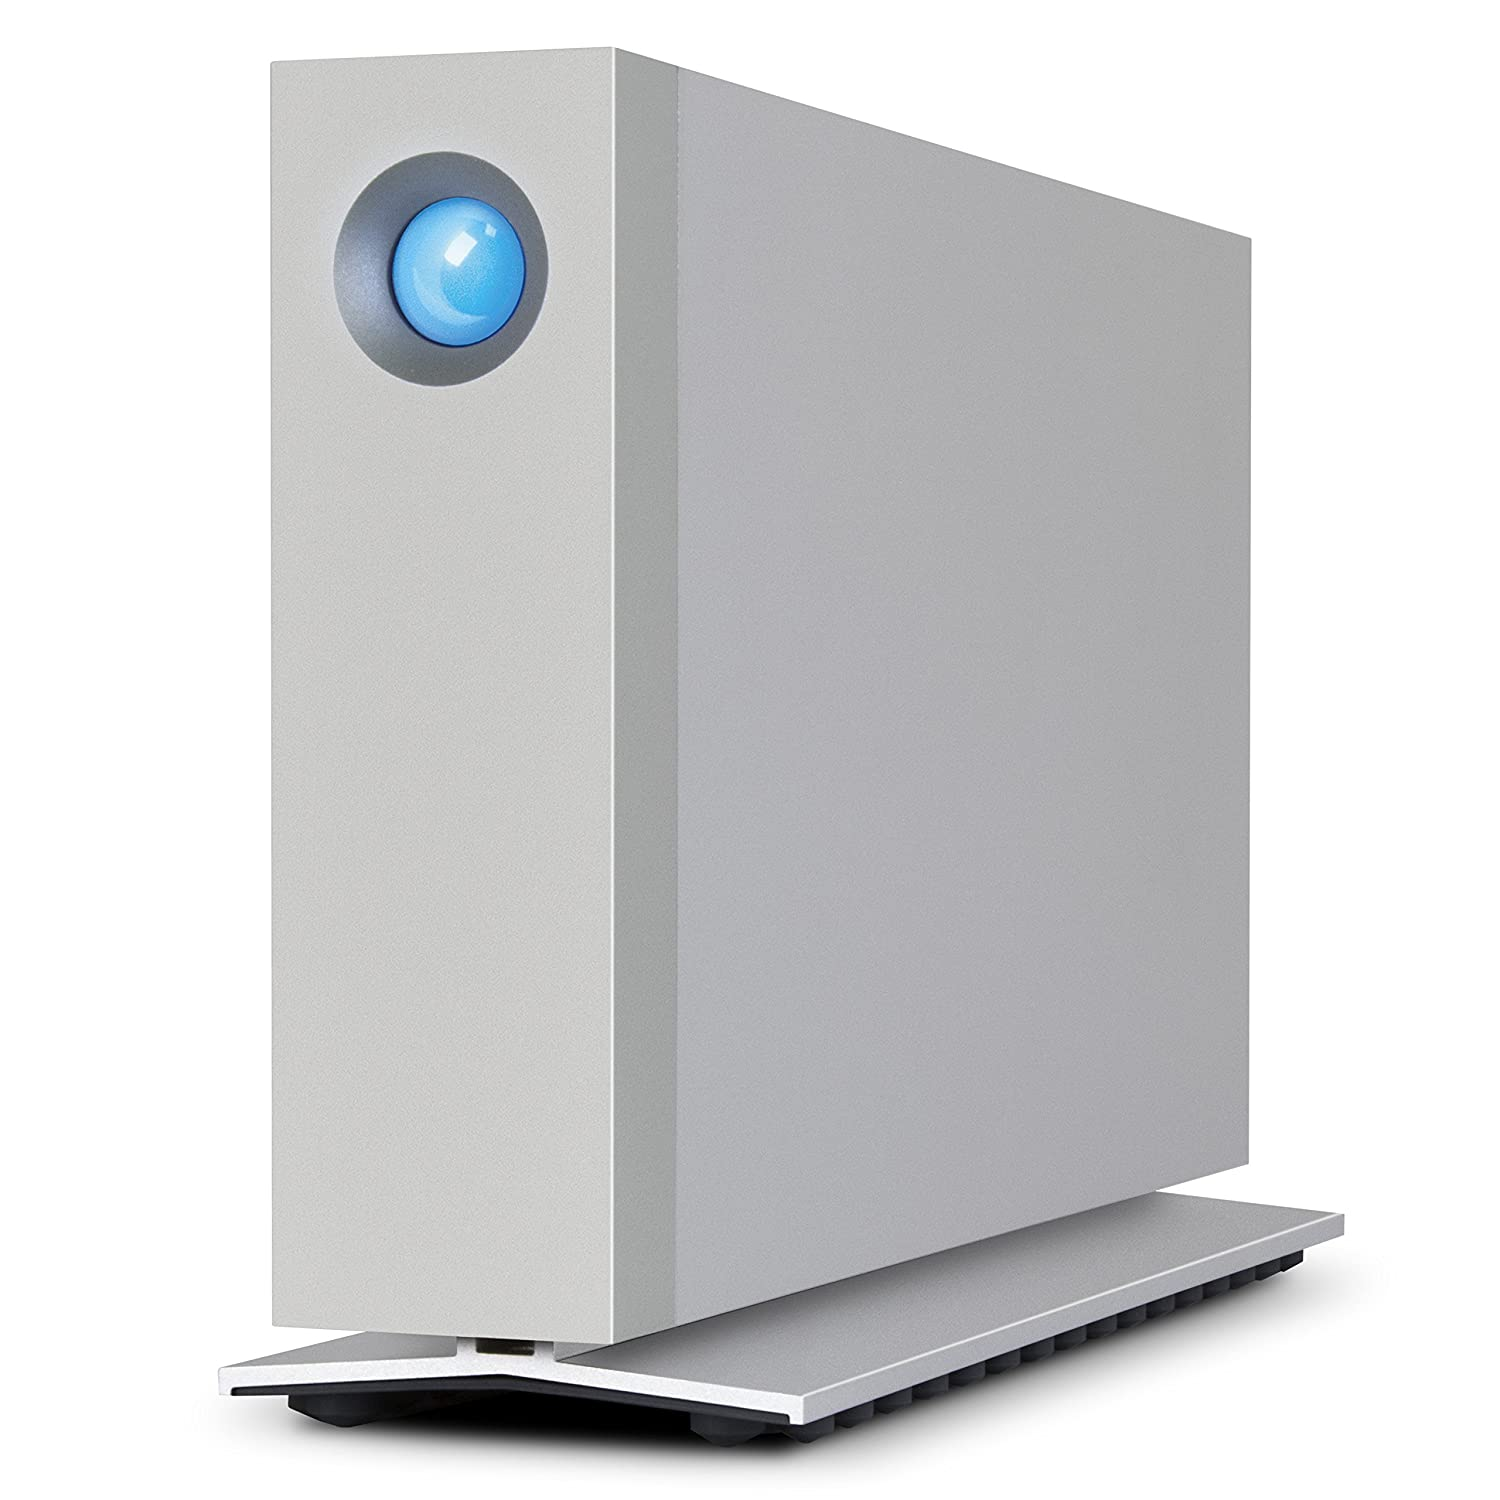 d2 Thunderbolt 3 6000GB Plata disco duro externo: Amazon.es ...